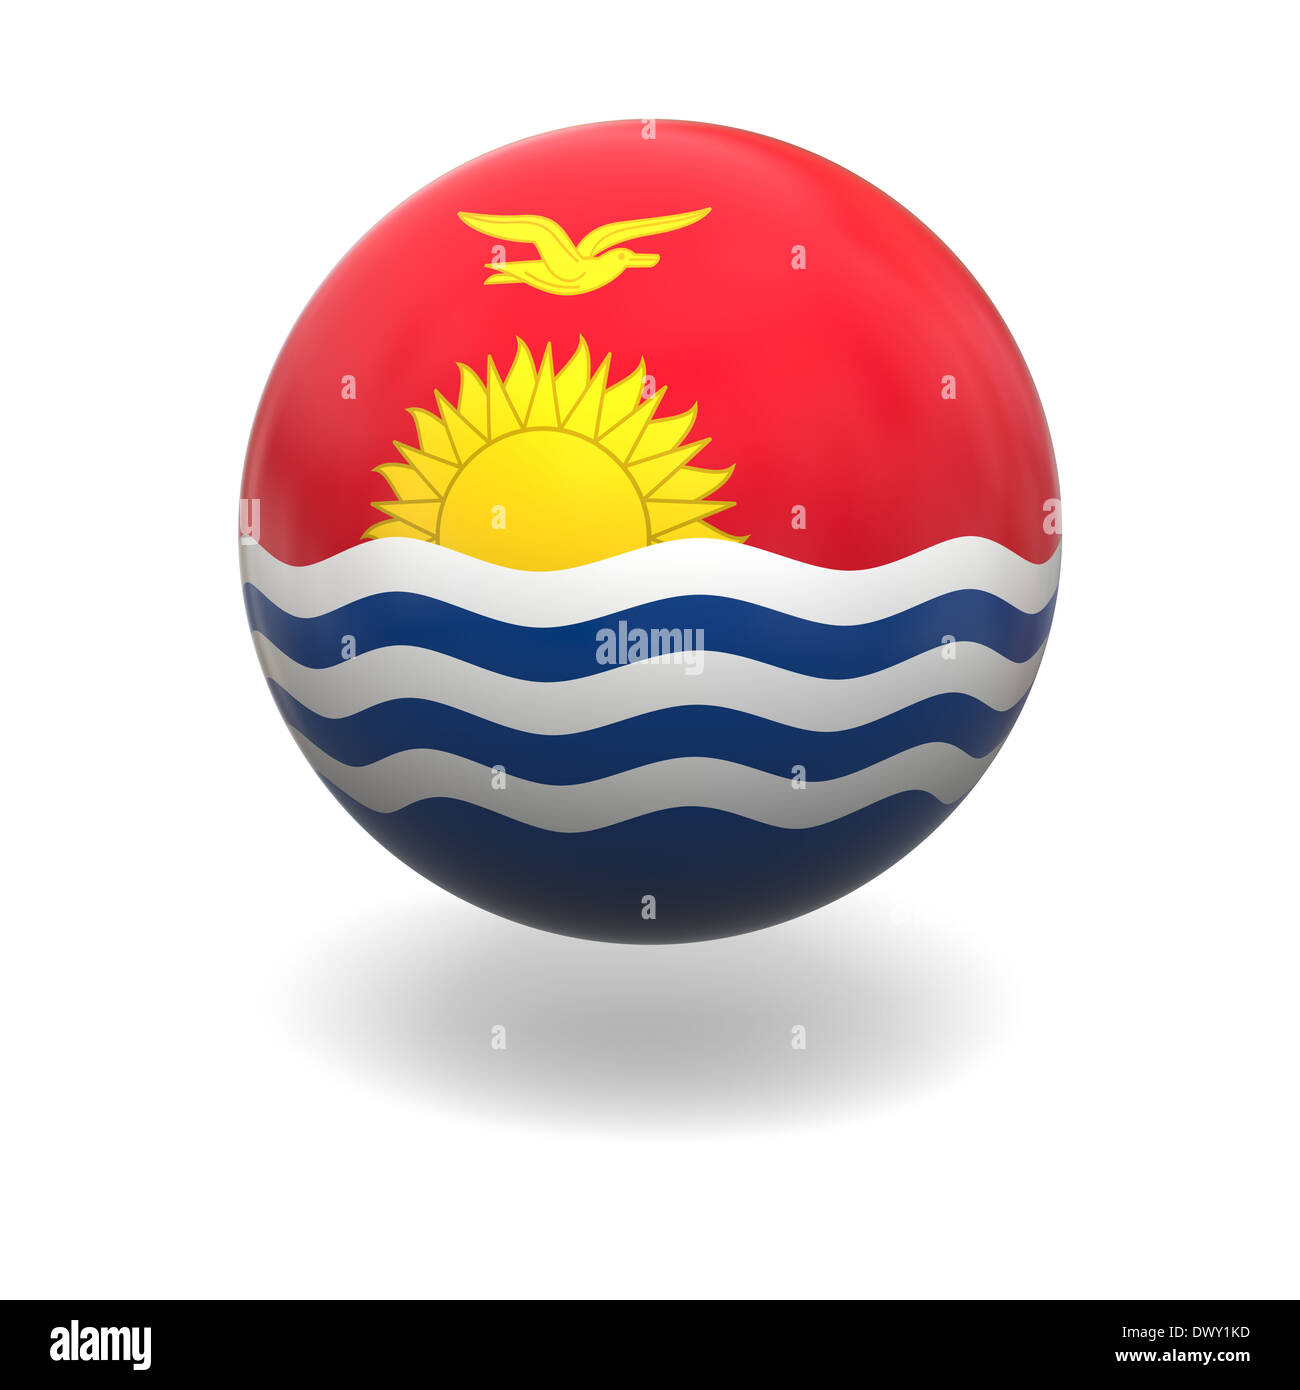 National flag of Kiribati on sphere isolated on white background - Stock Image